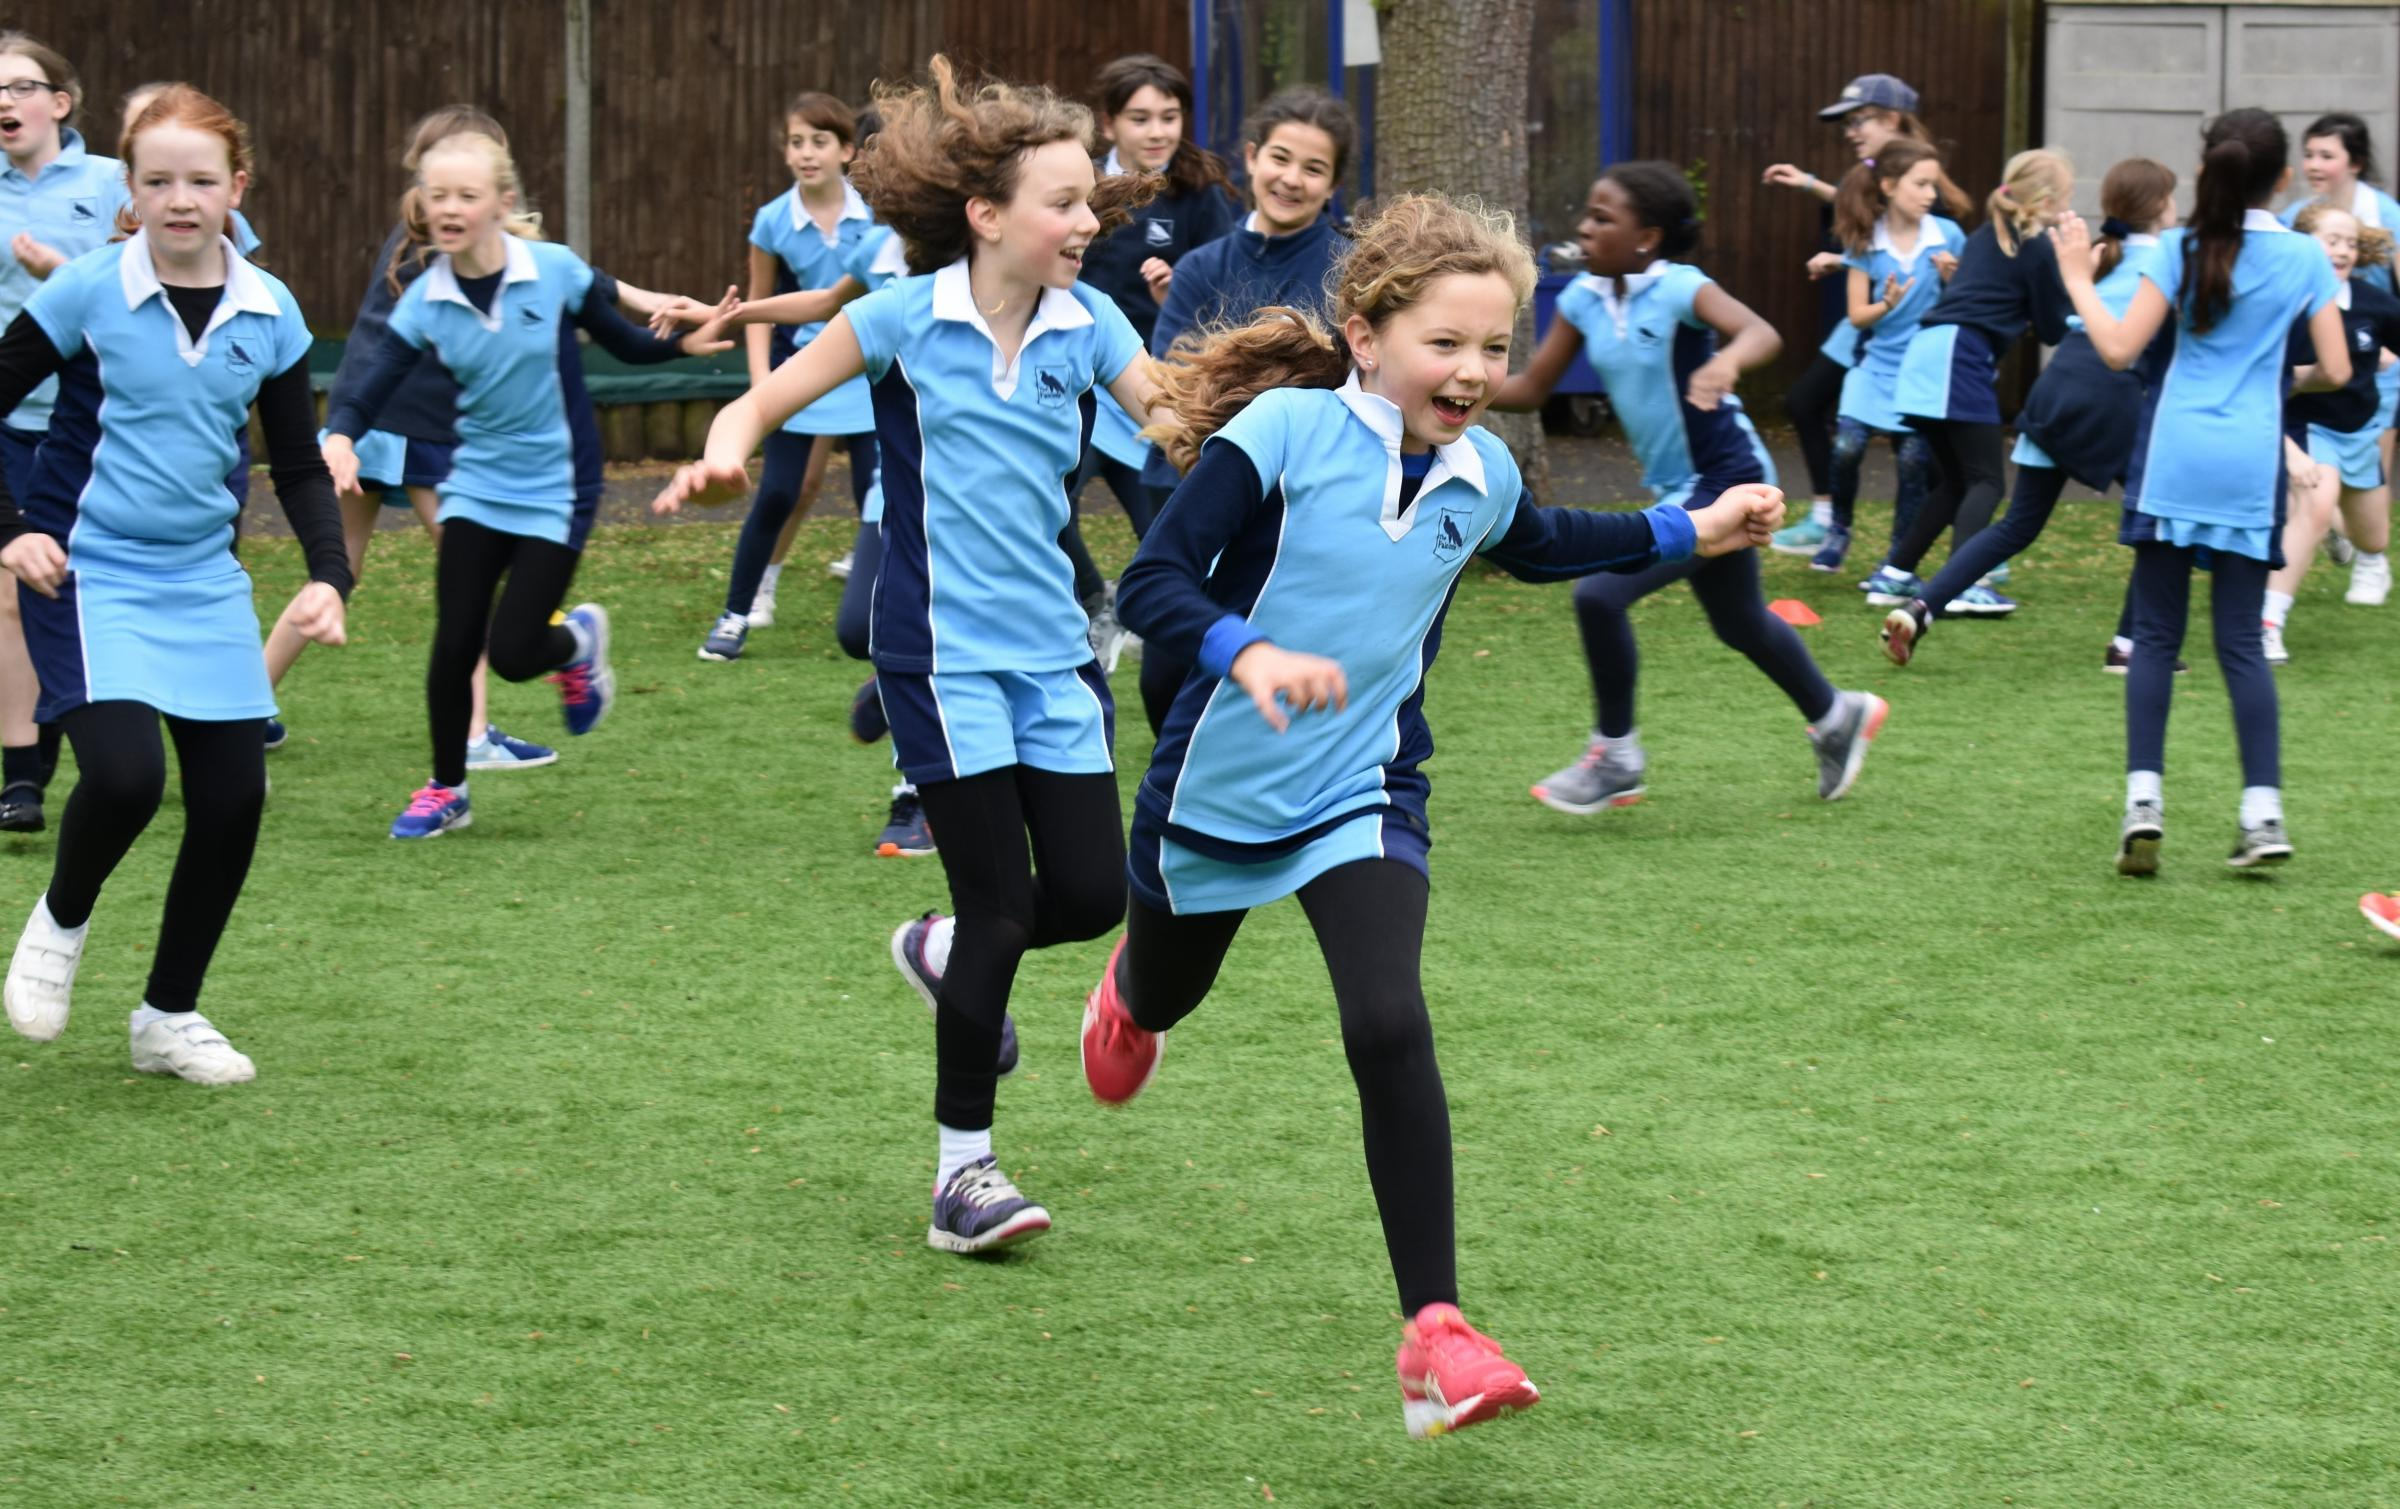 Pupils at Falcons School for Girls taking part in rugby workshop